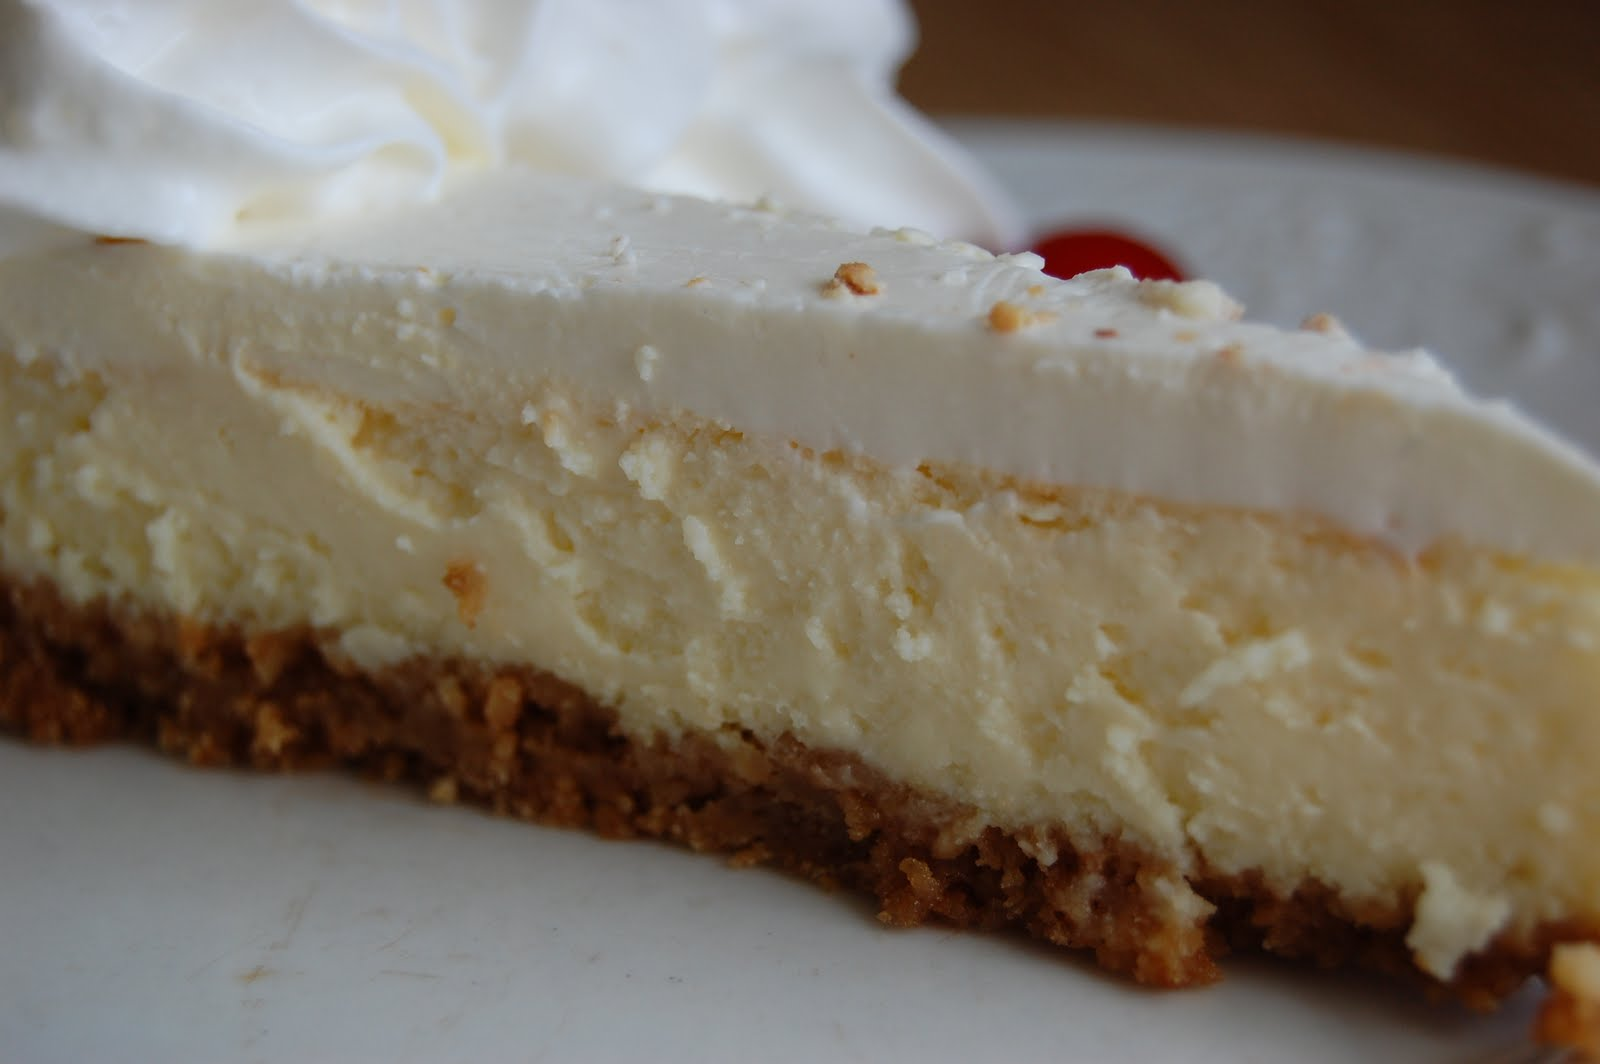 Food, Fun & Life: Sour Cream Cheesecake